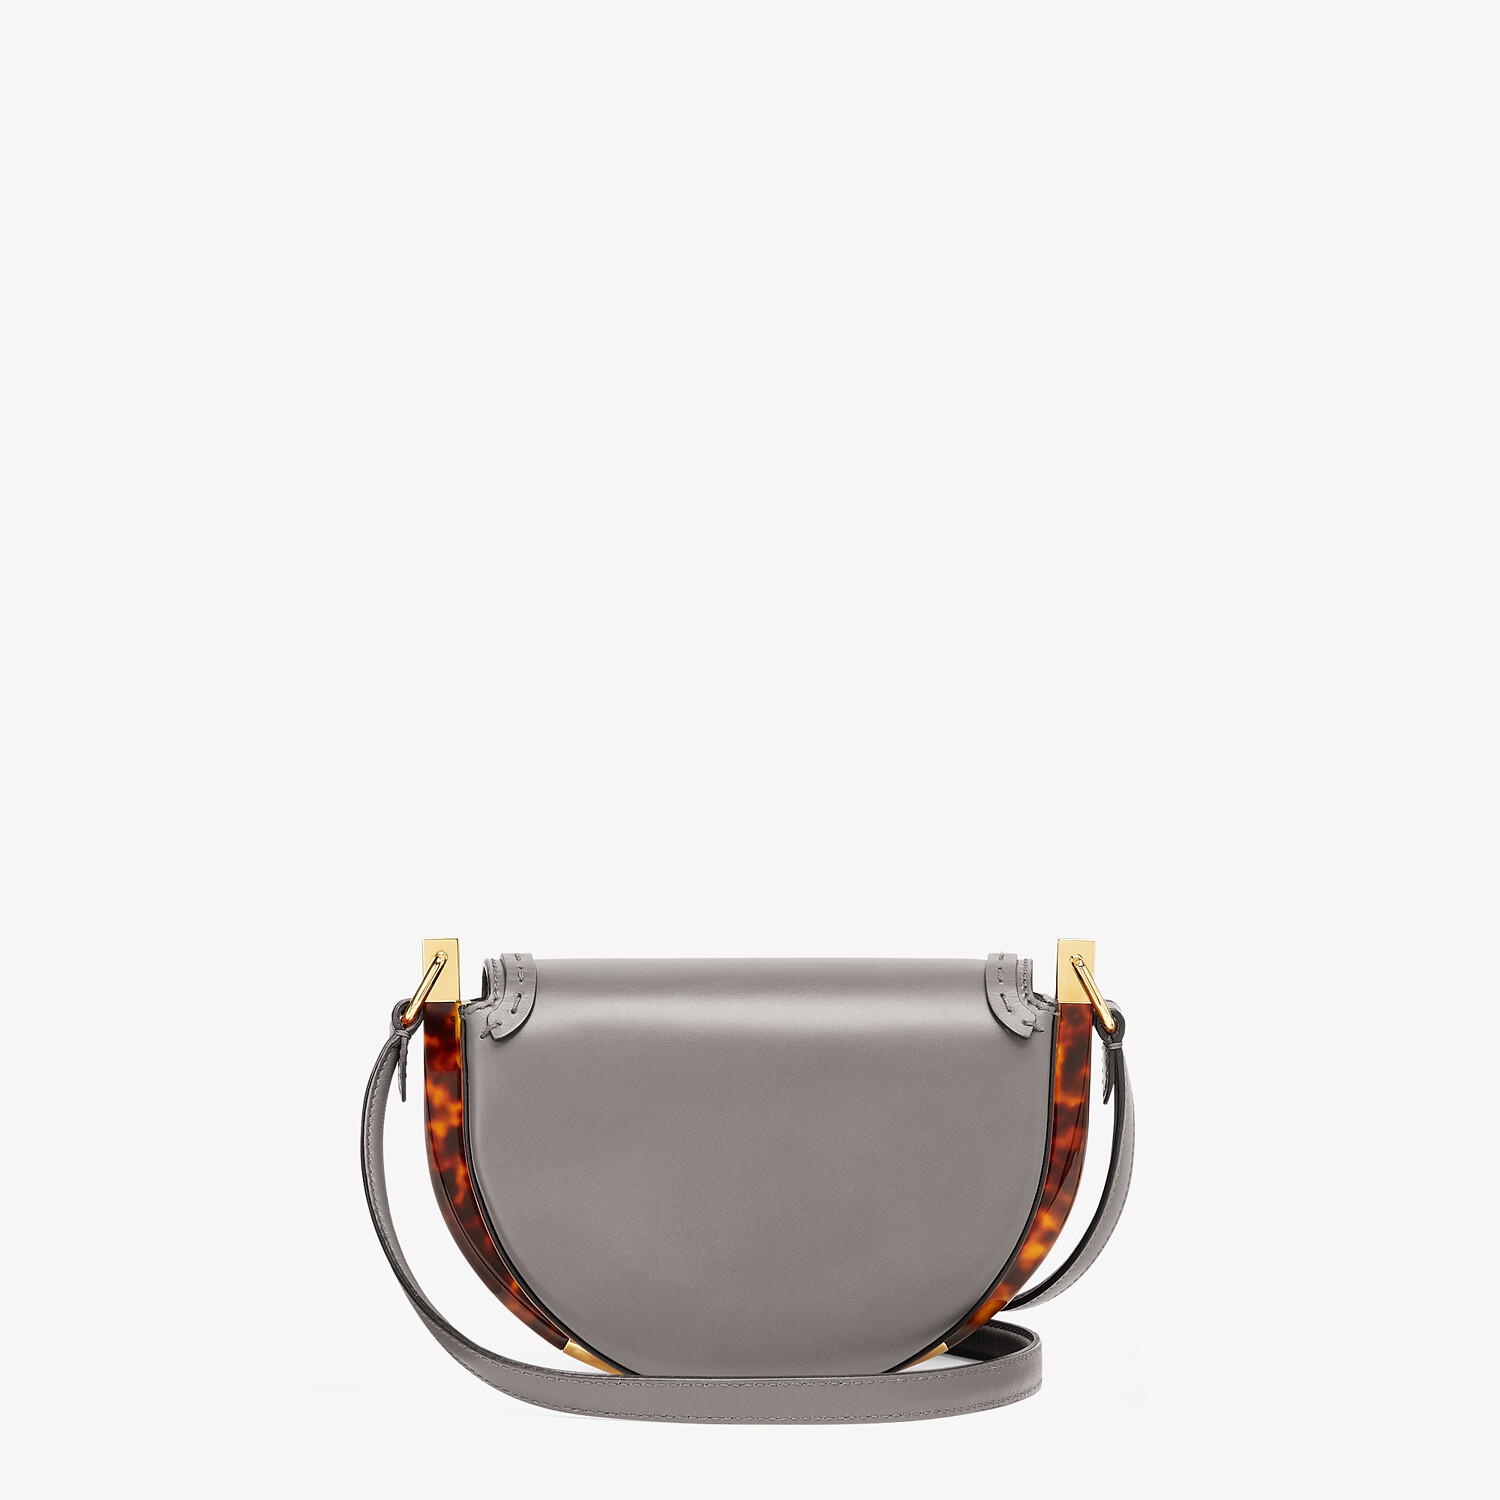 FENDI MOONLIGHT - Gray leather bag - view 3 detail